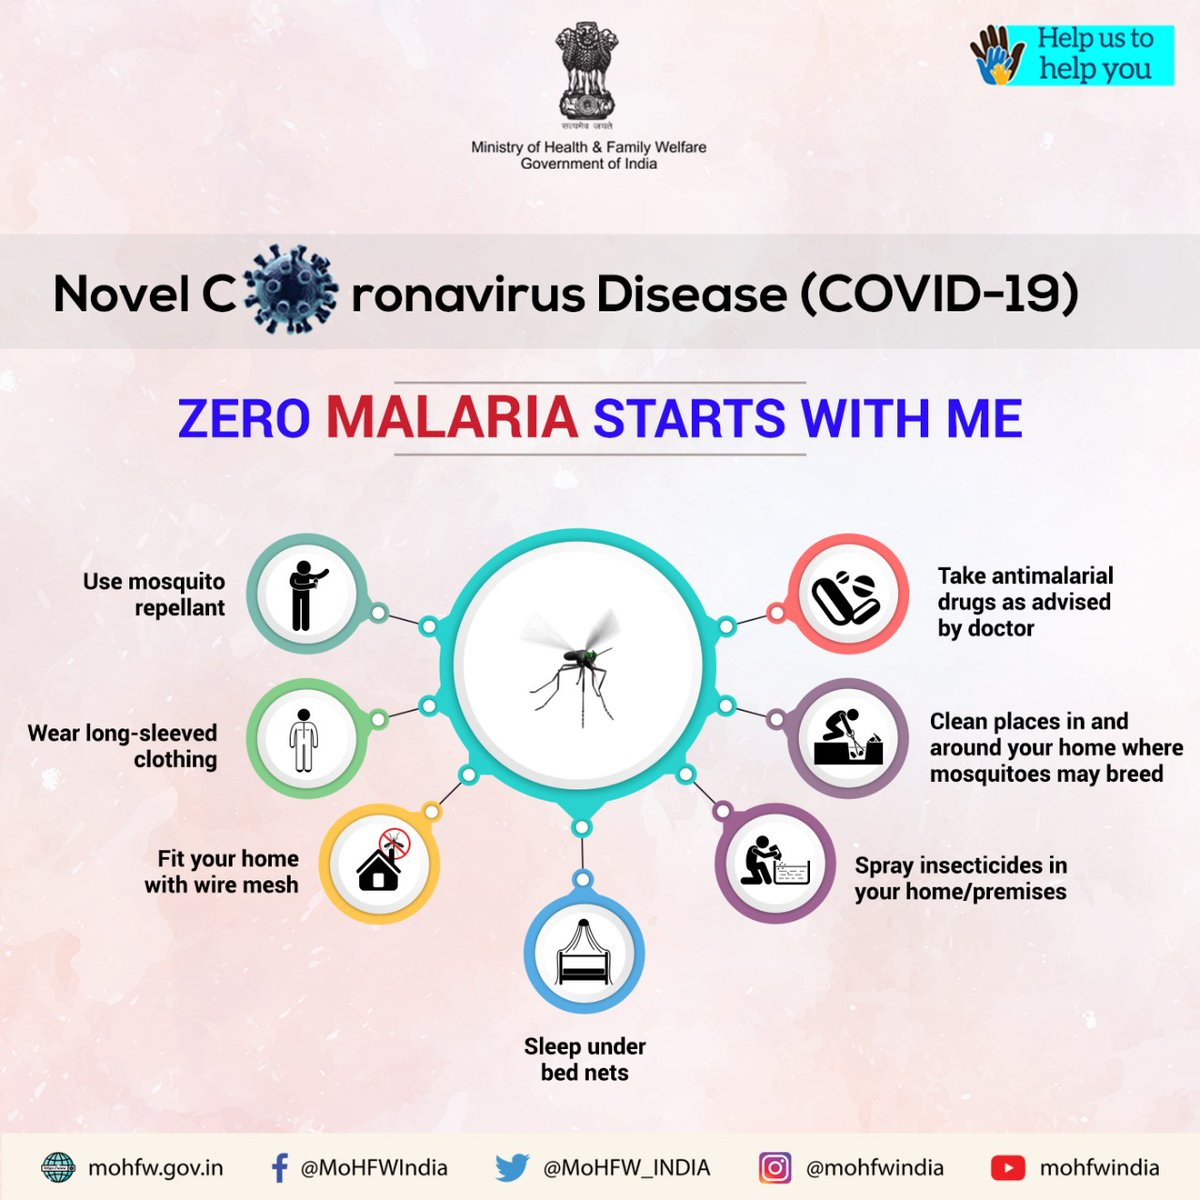 Malaria can also attack in times of #COVID19. Take ample precautions to stay protected from #Malaria. Lets #BeatMalaria with these easy-to-follow methods. Know more: nvbdcp.gov.in/malaria11.html  #SwasthaBharat #HealthForAll #IndiaFightsCorona #TogetherAgainstCovid19